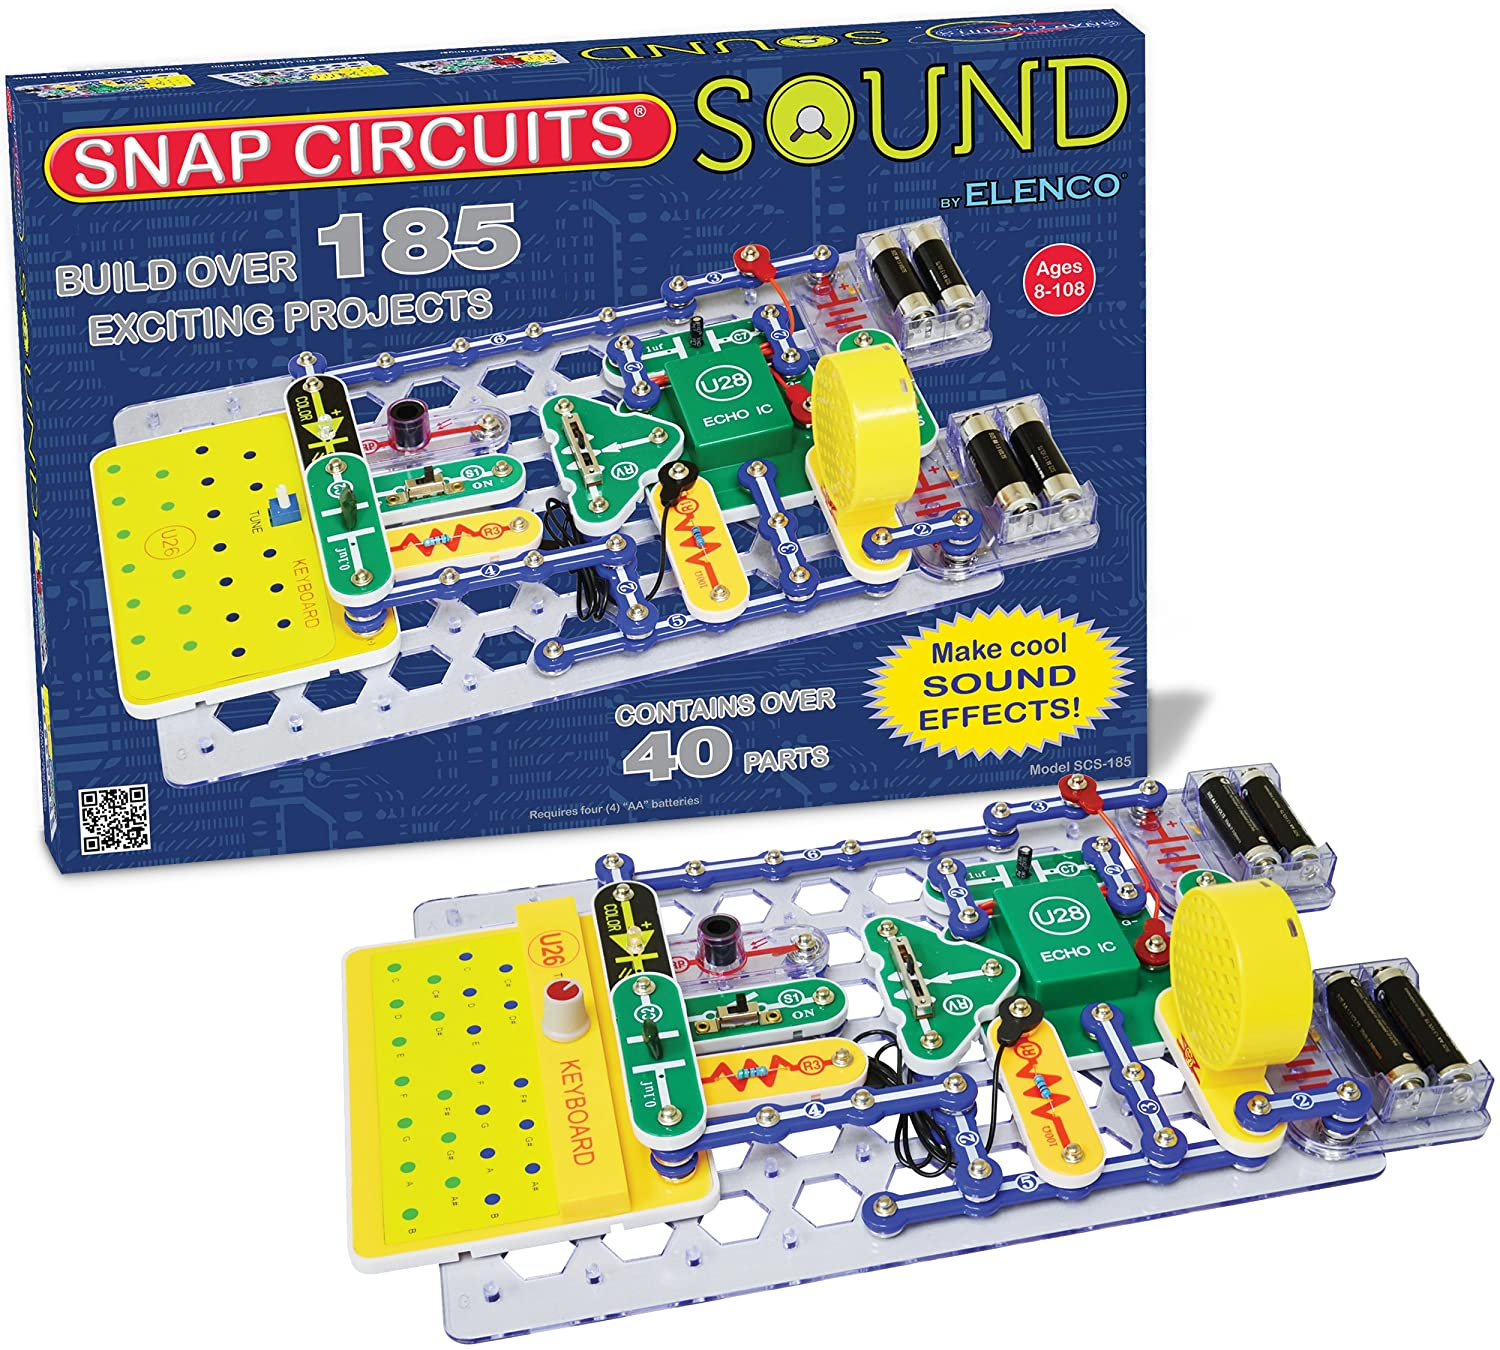 Amazon.com: Snap Circuits Sound Electronics Discovery Kit: Toys & Games